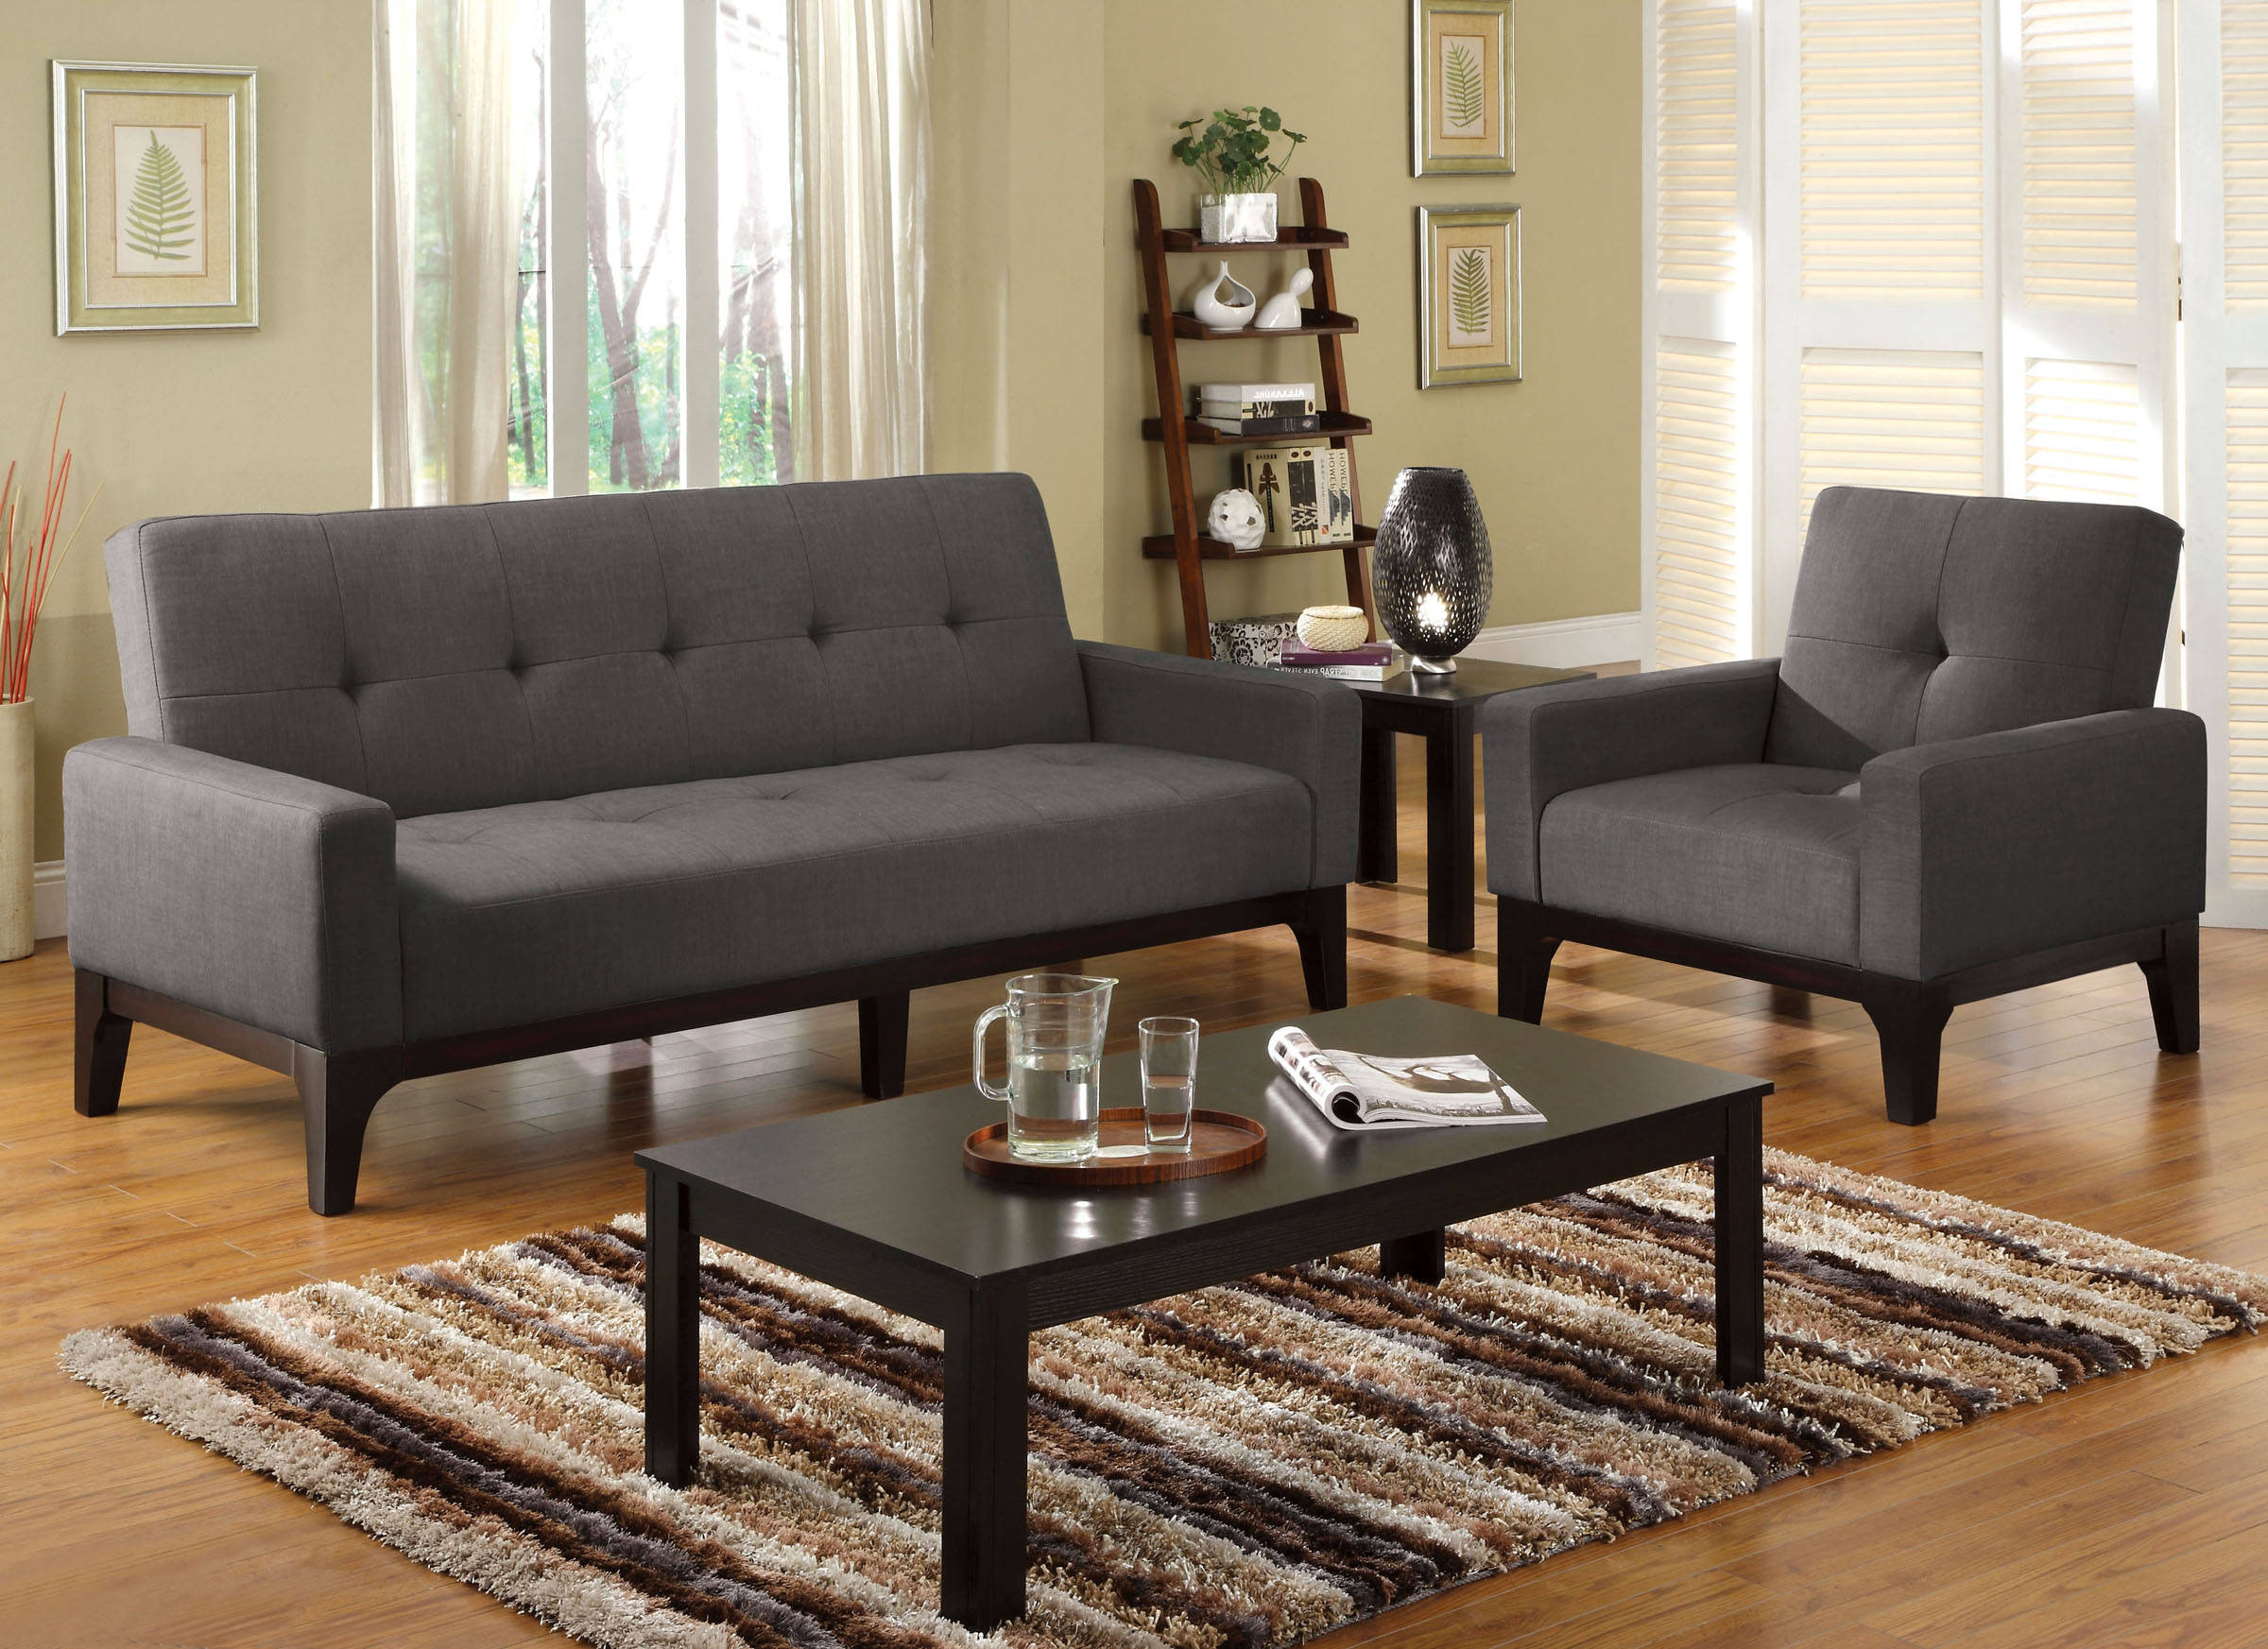 Laporte Transitional Charcoal Fabric Solid Wood Futon Sofa